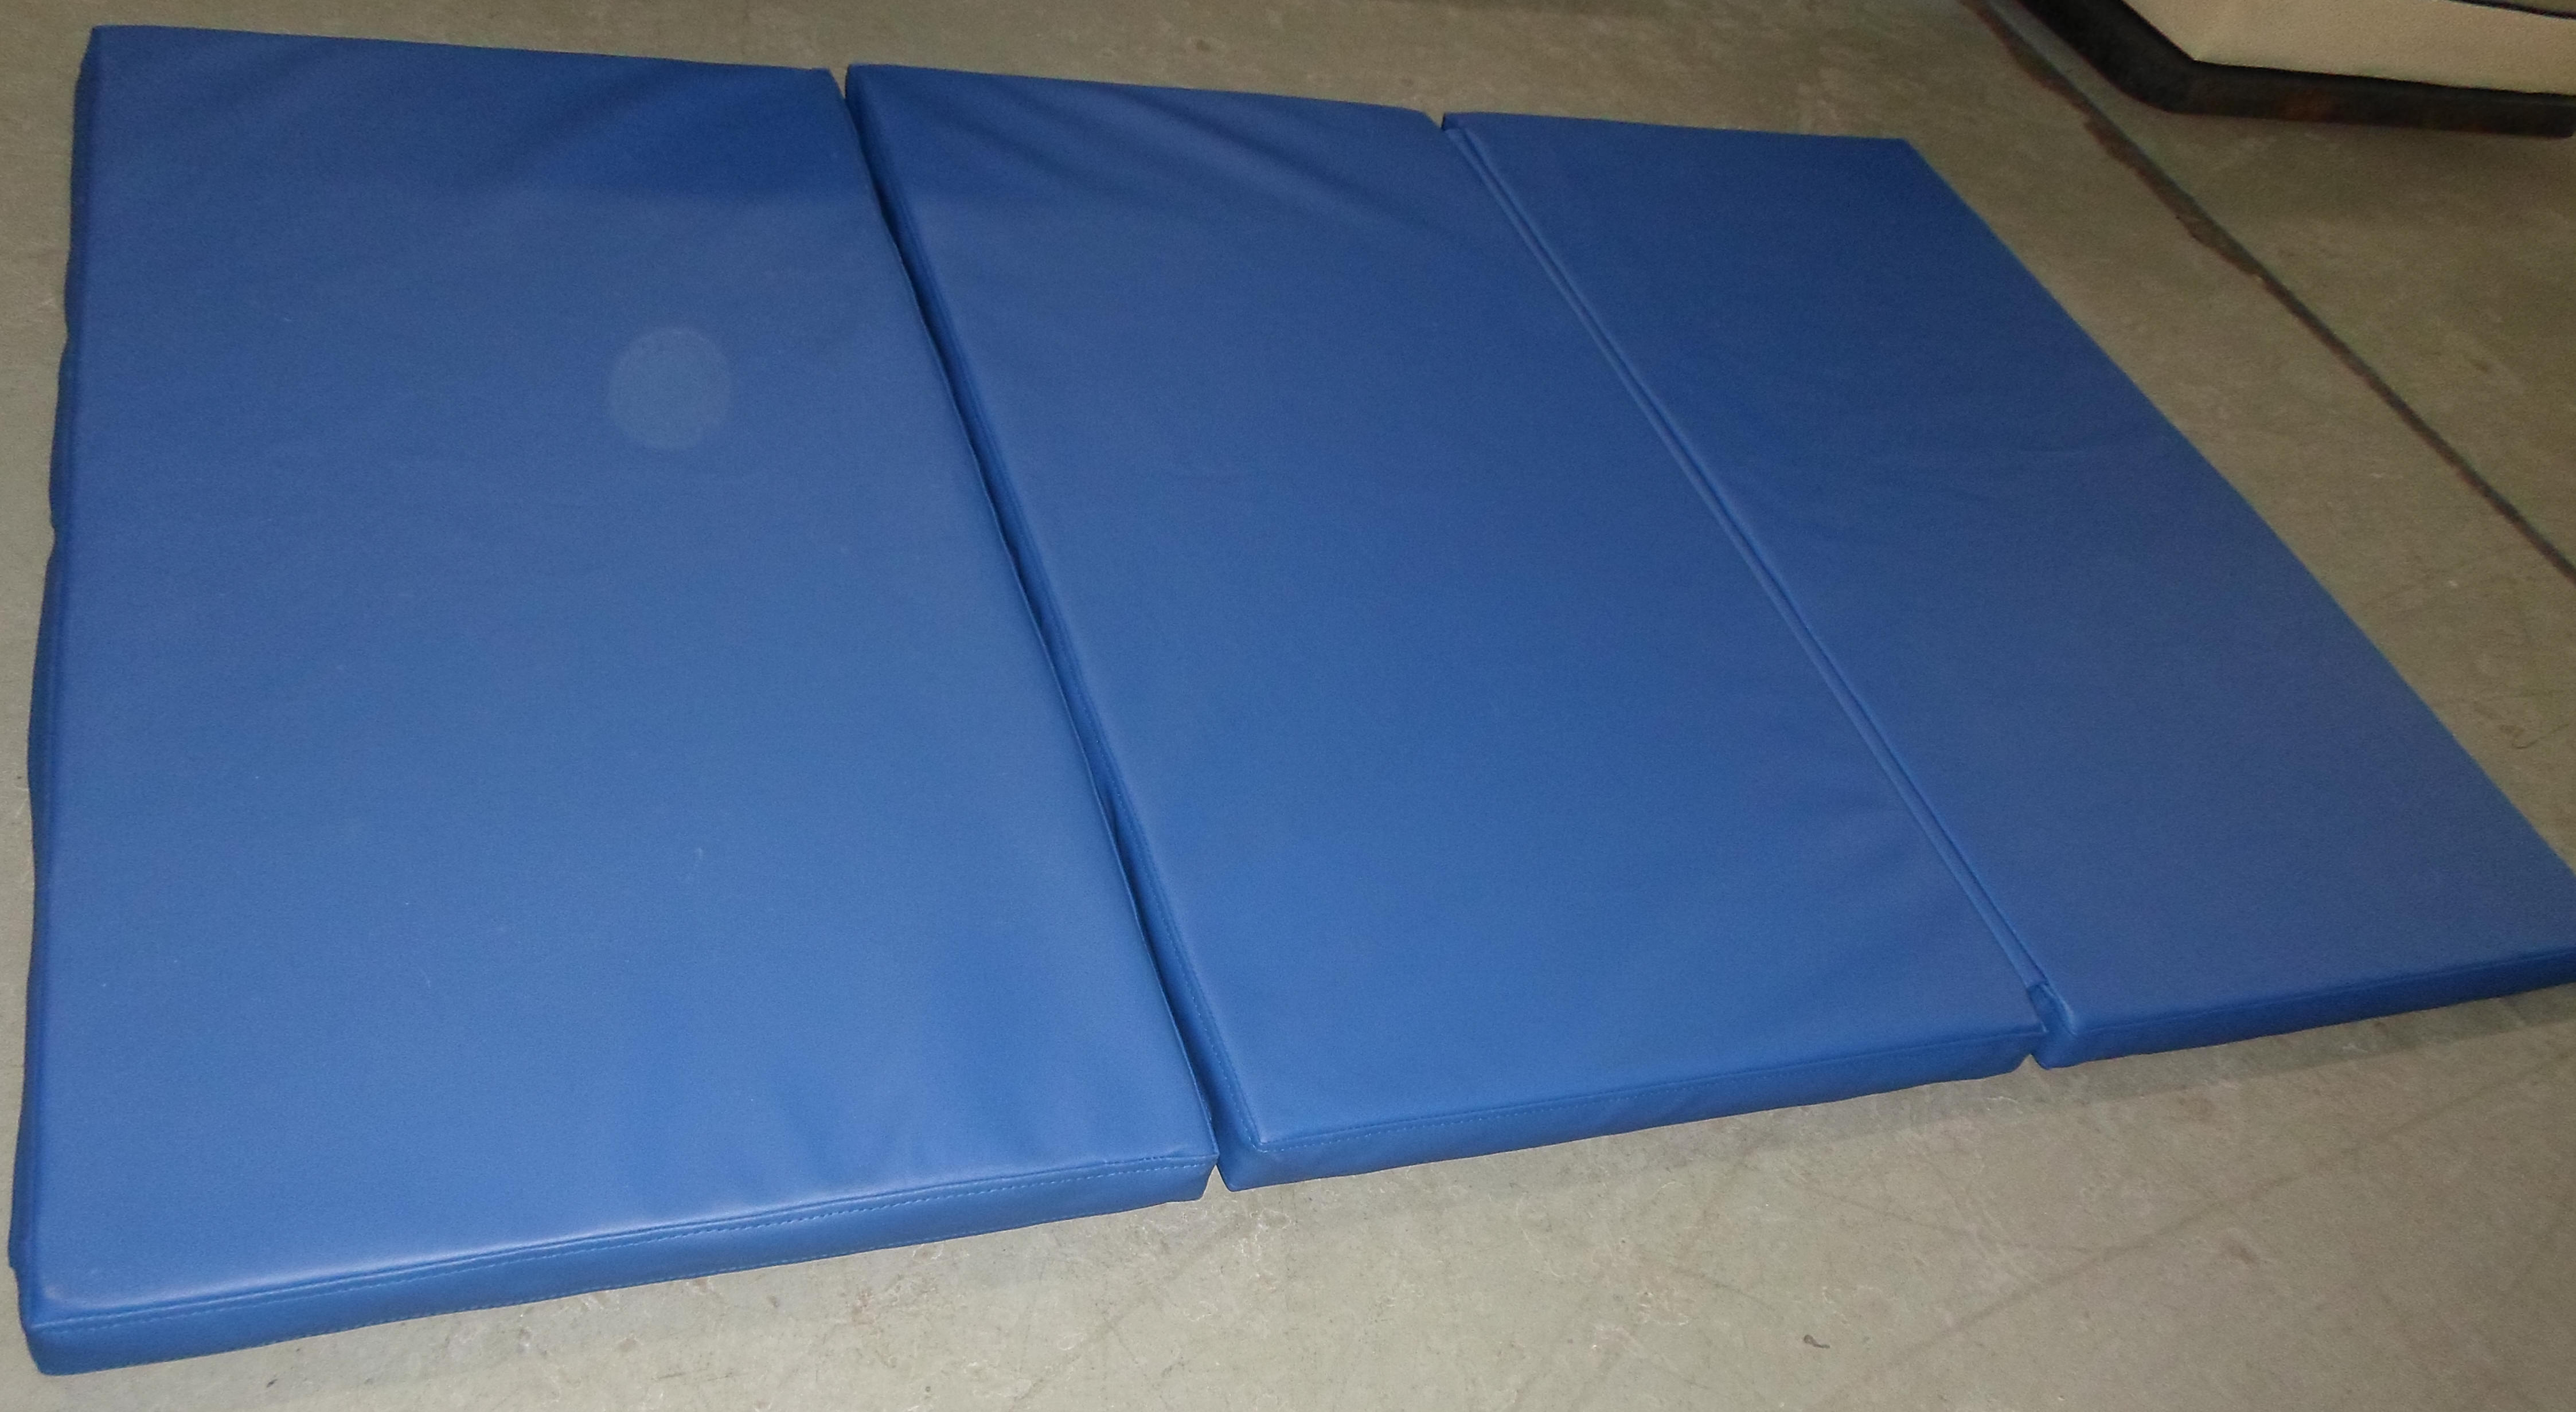 tri fold health no ip mat and exercise mats fitness sunny com walmart